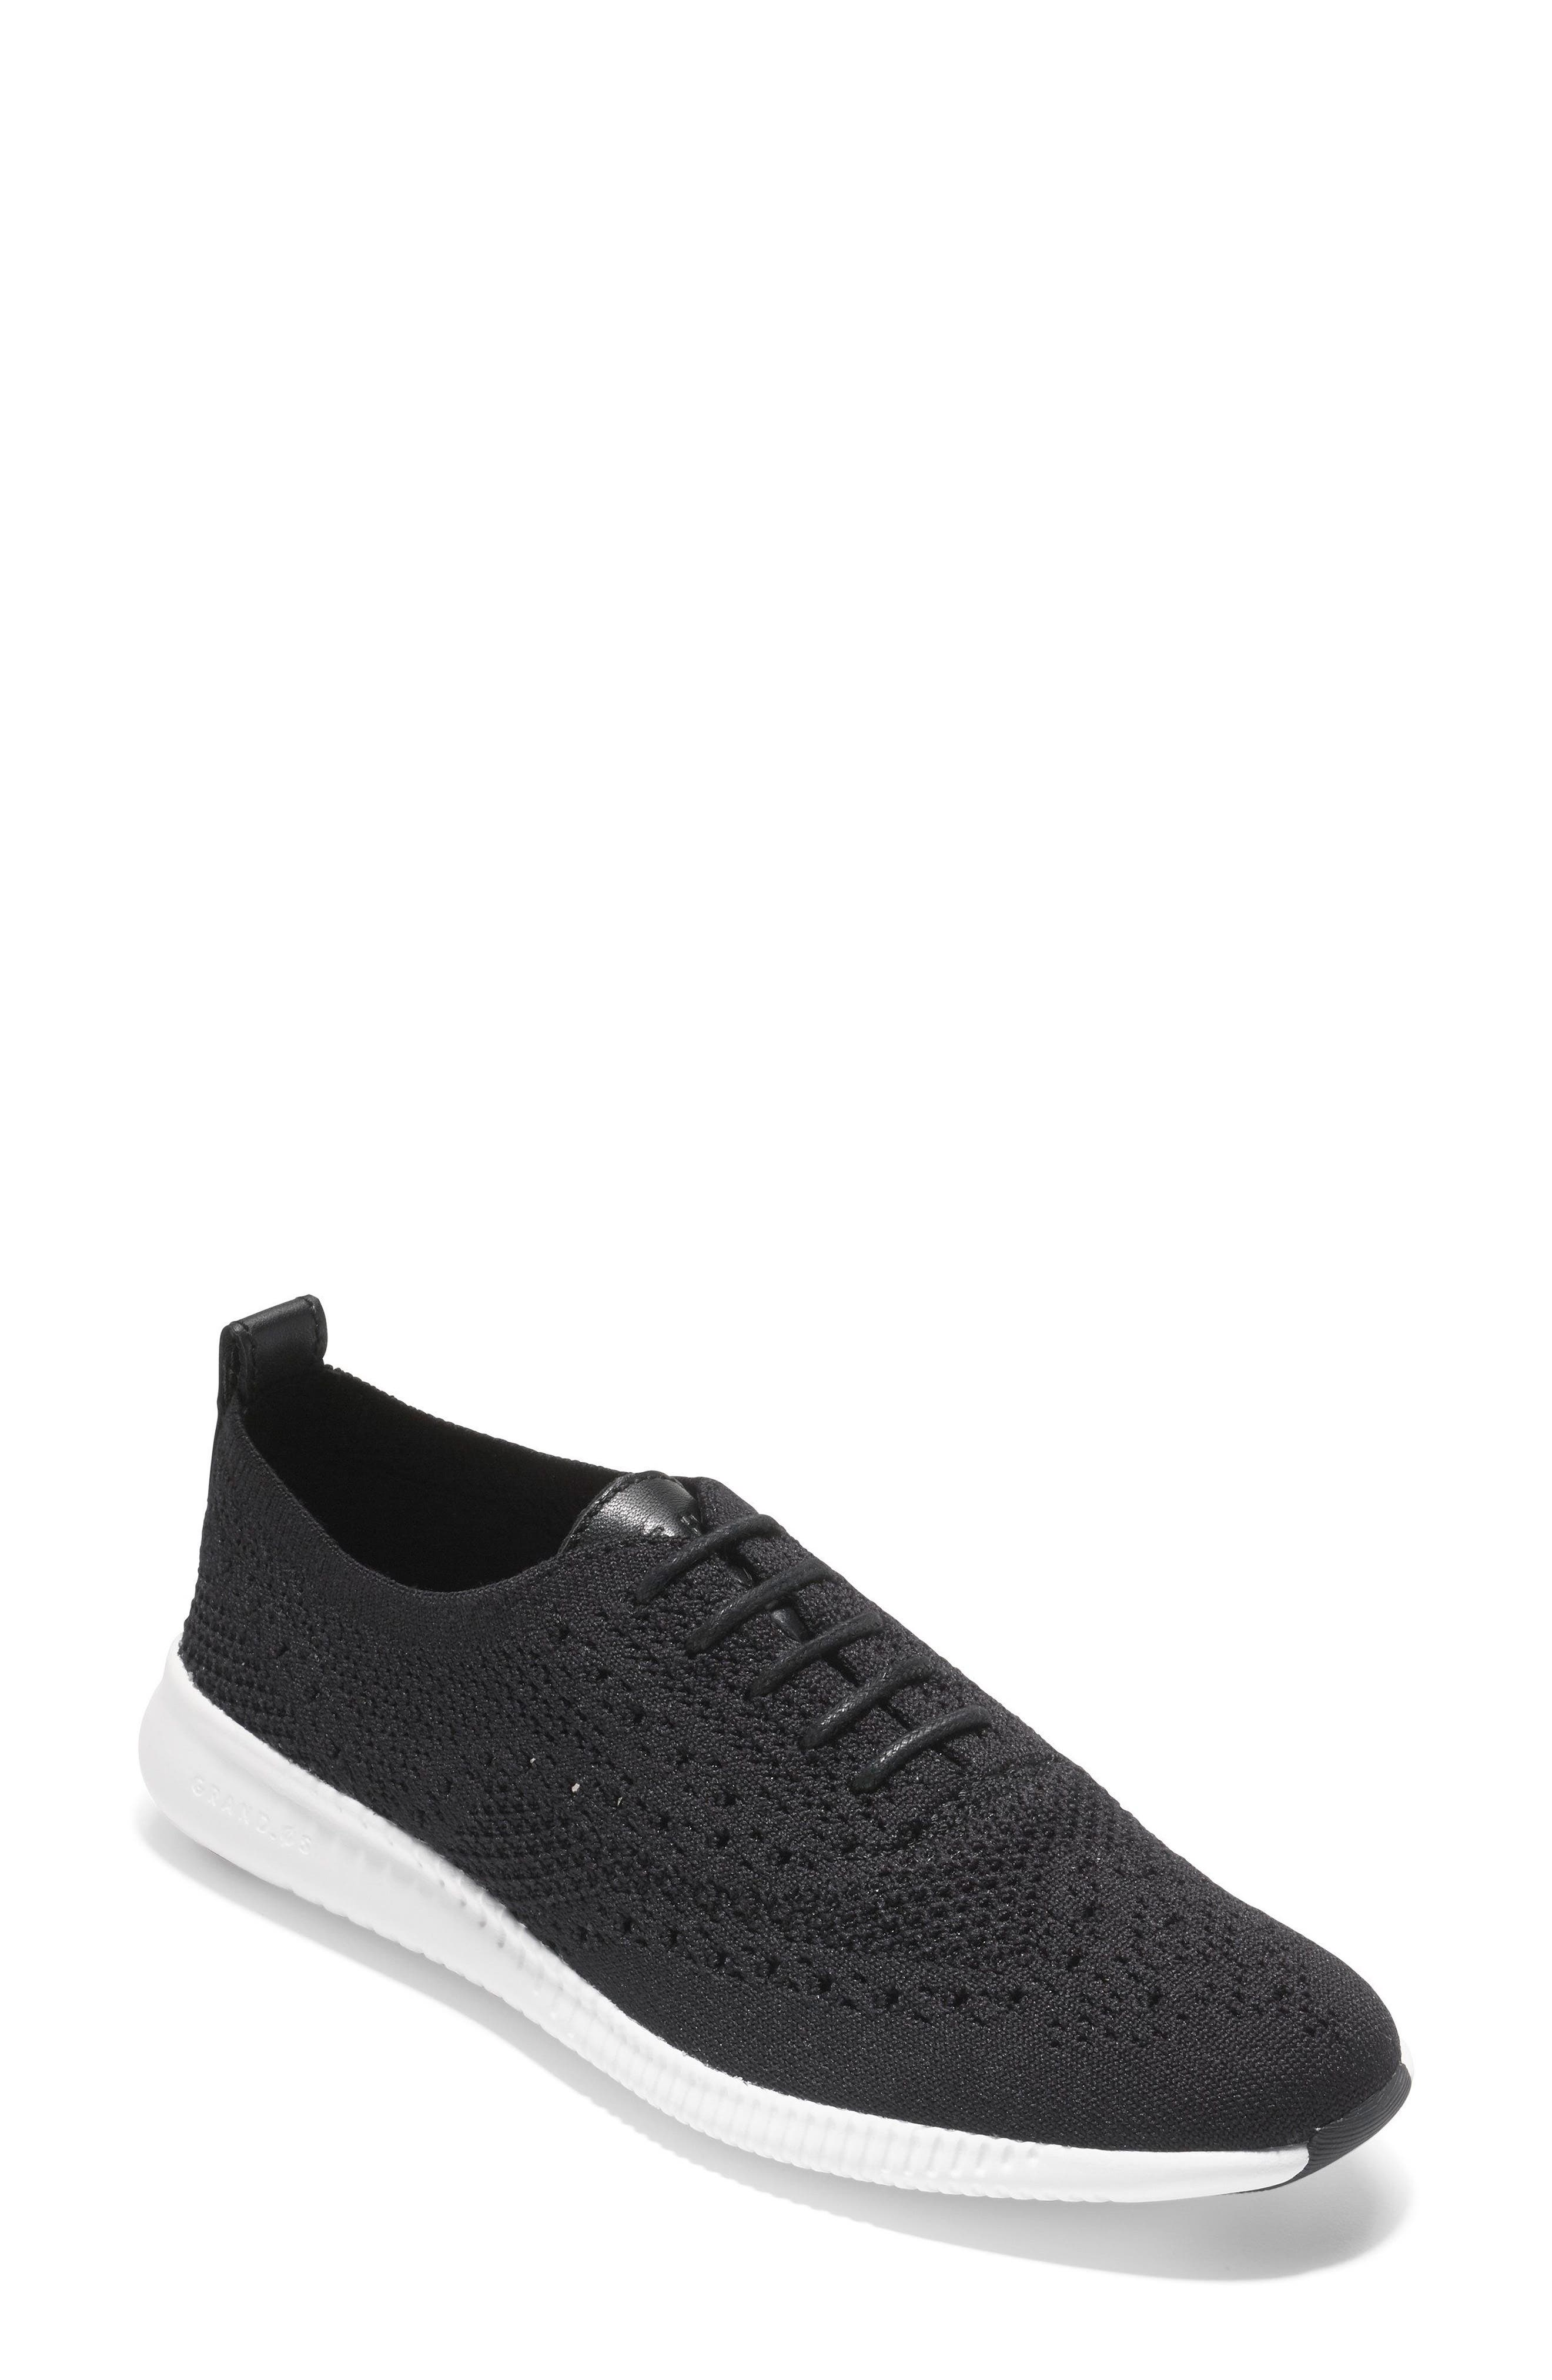 COLE HAAN, 2.ZERØGRAND Stitchlite Wingtip Sneaker, Main thumbnail 1, color, BLACK FABRIC